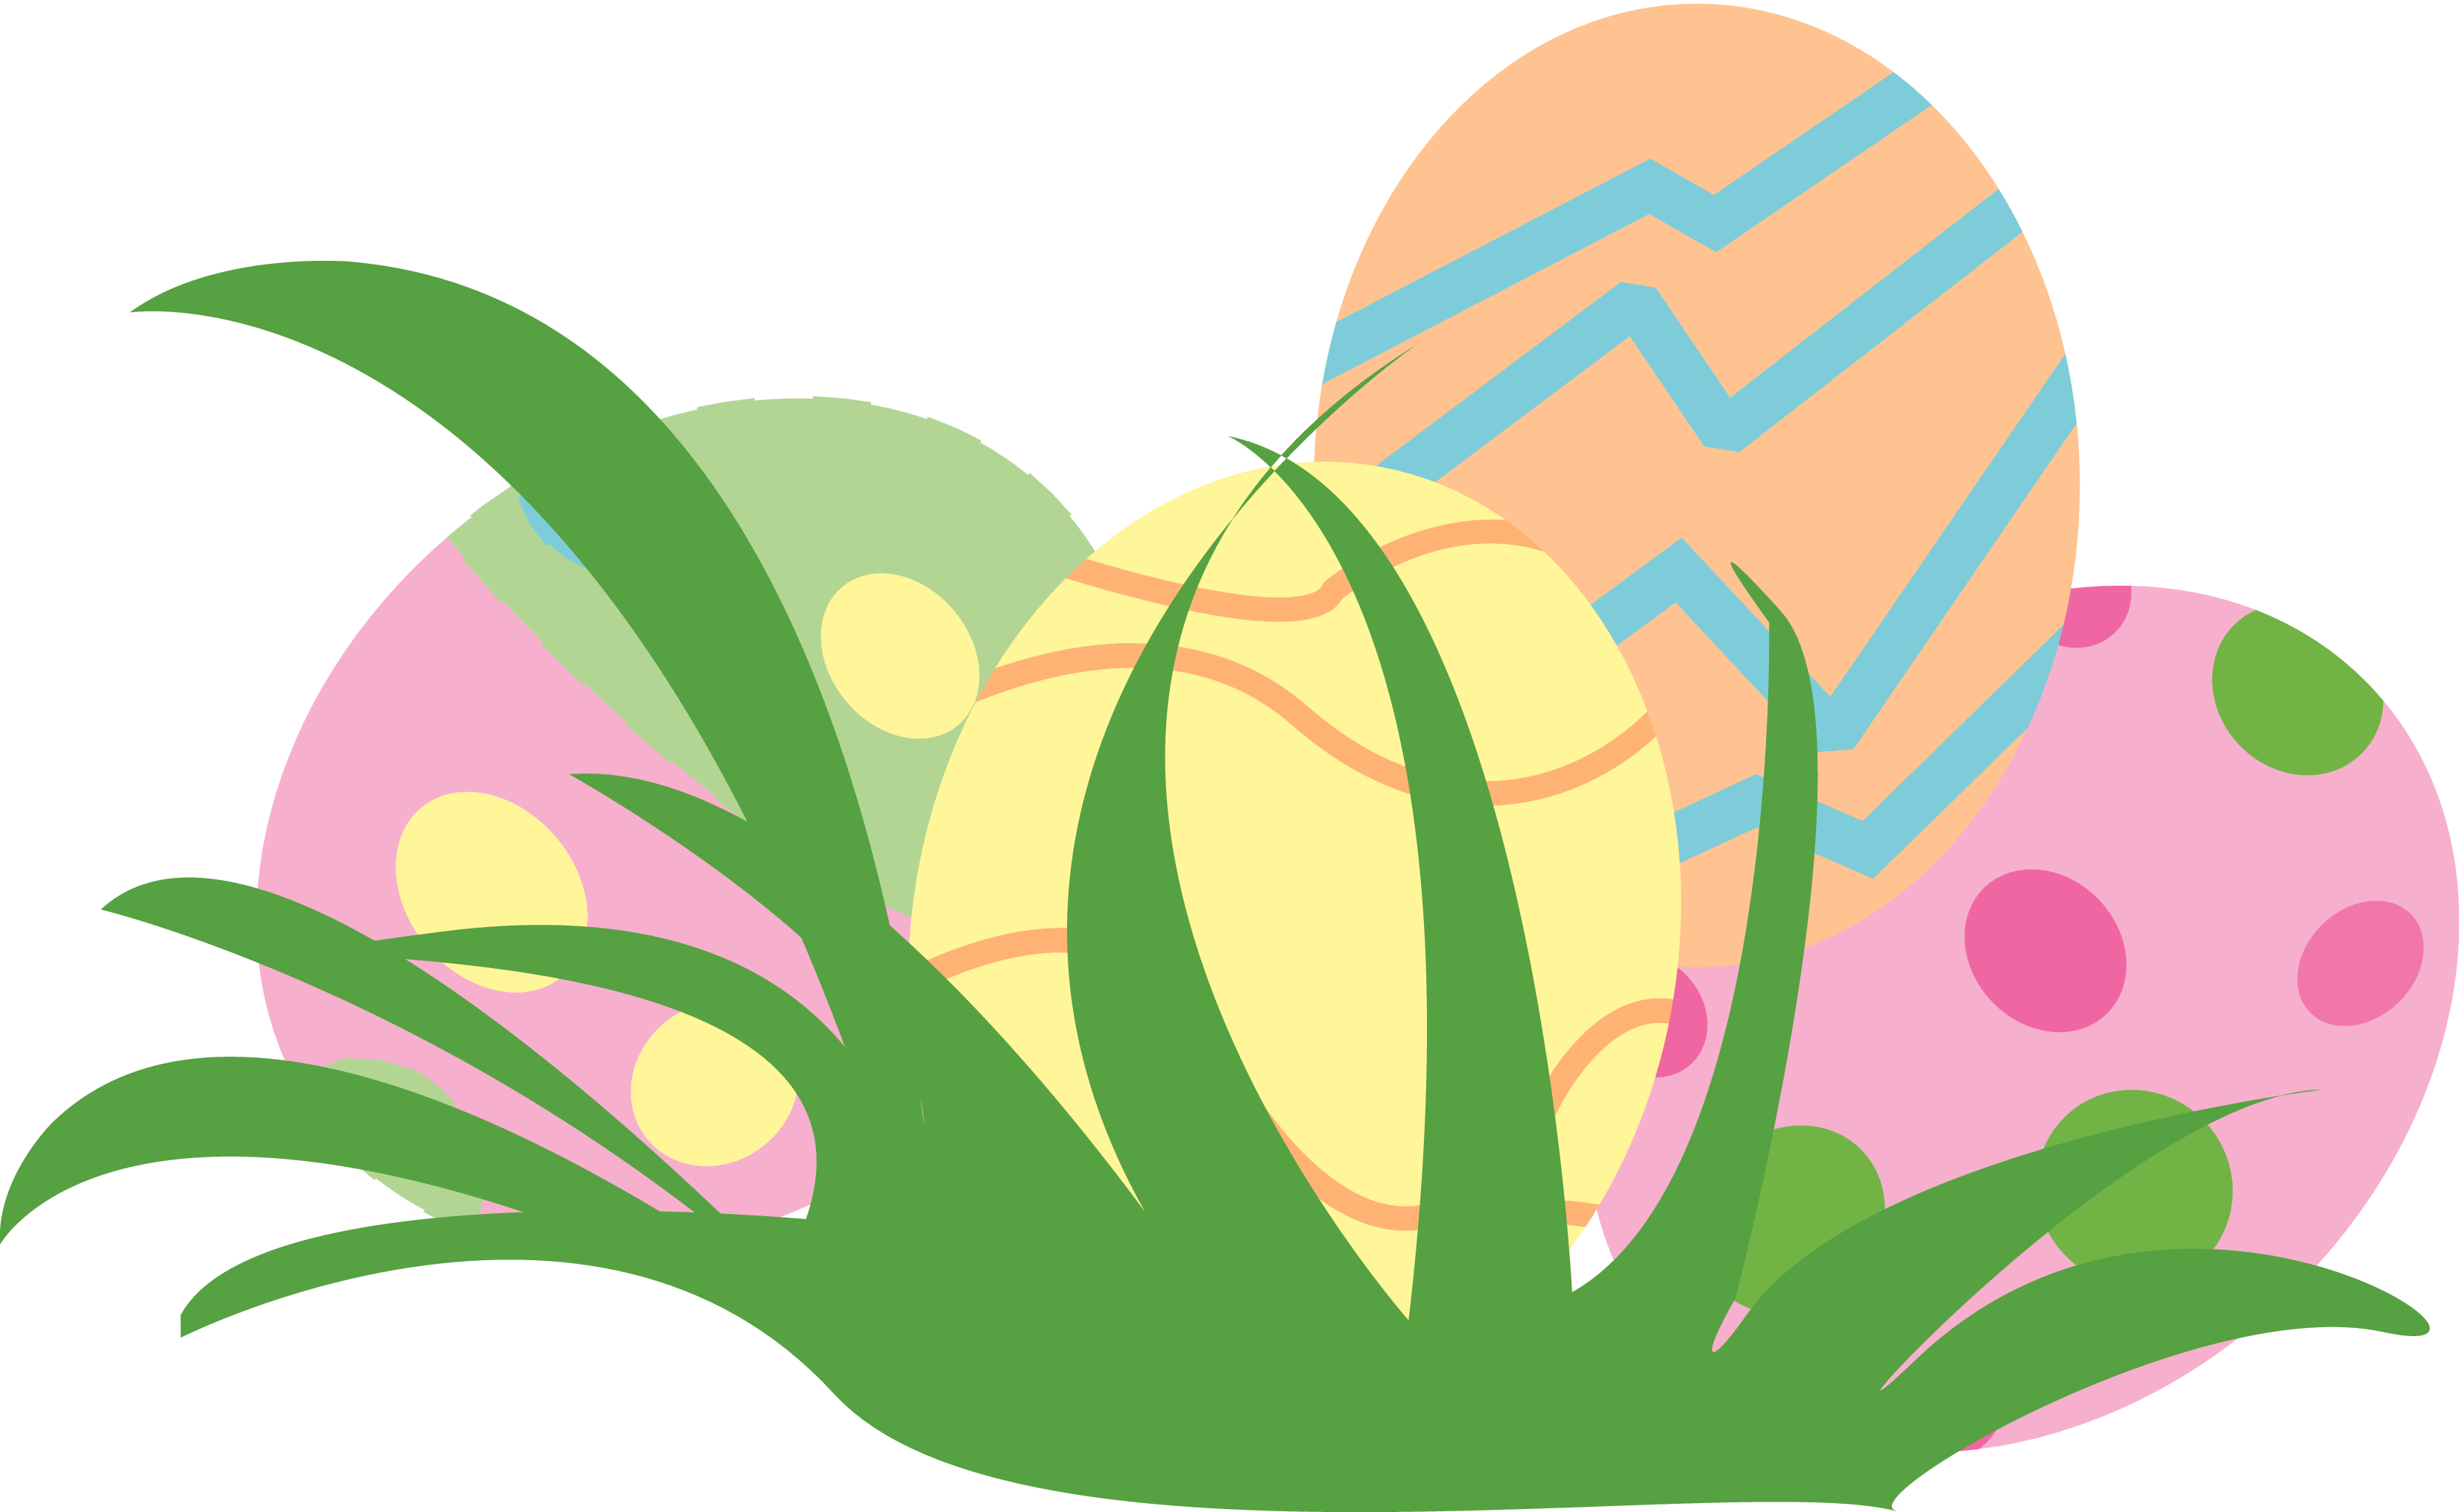 Easter flower clipart png svg library library 30 easter egg clipart - ClipartFox svg library library